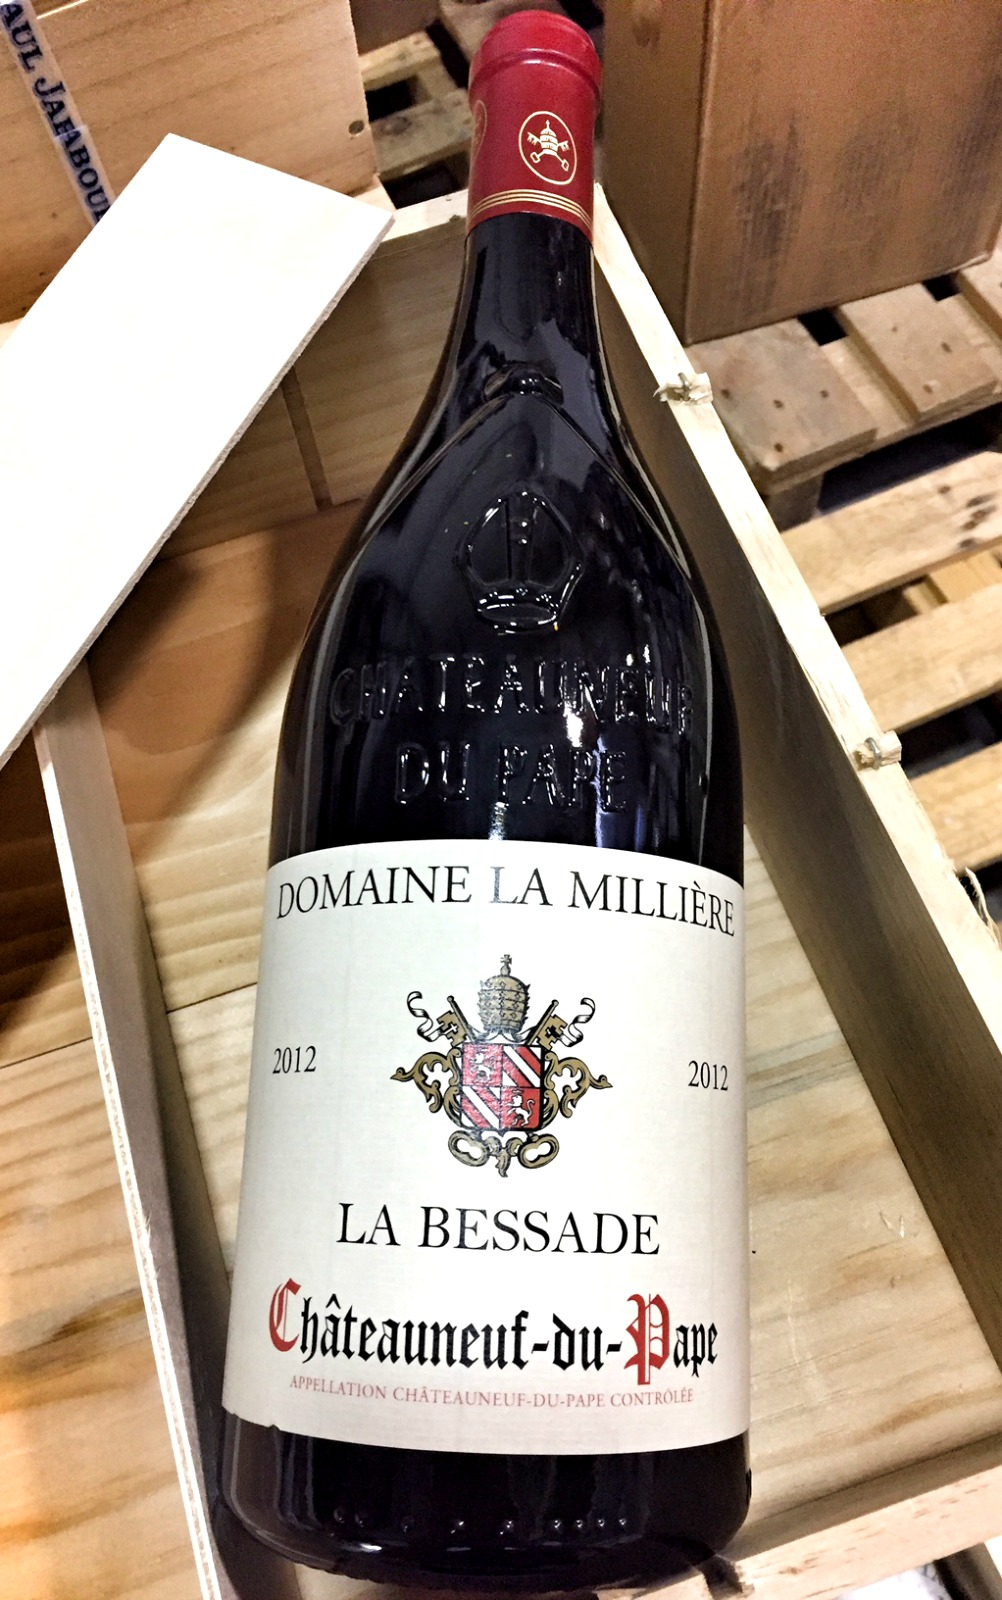 Domaine de la Milliere Chateauneuf du Pape La Bessade 2012, 1.5L (WA93, VN92) from The BPW - Merchants of rare and fine wines.